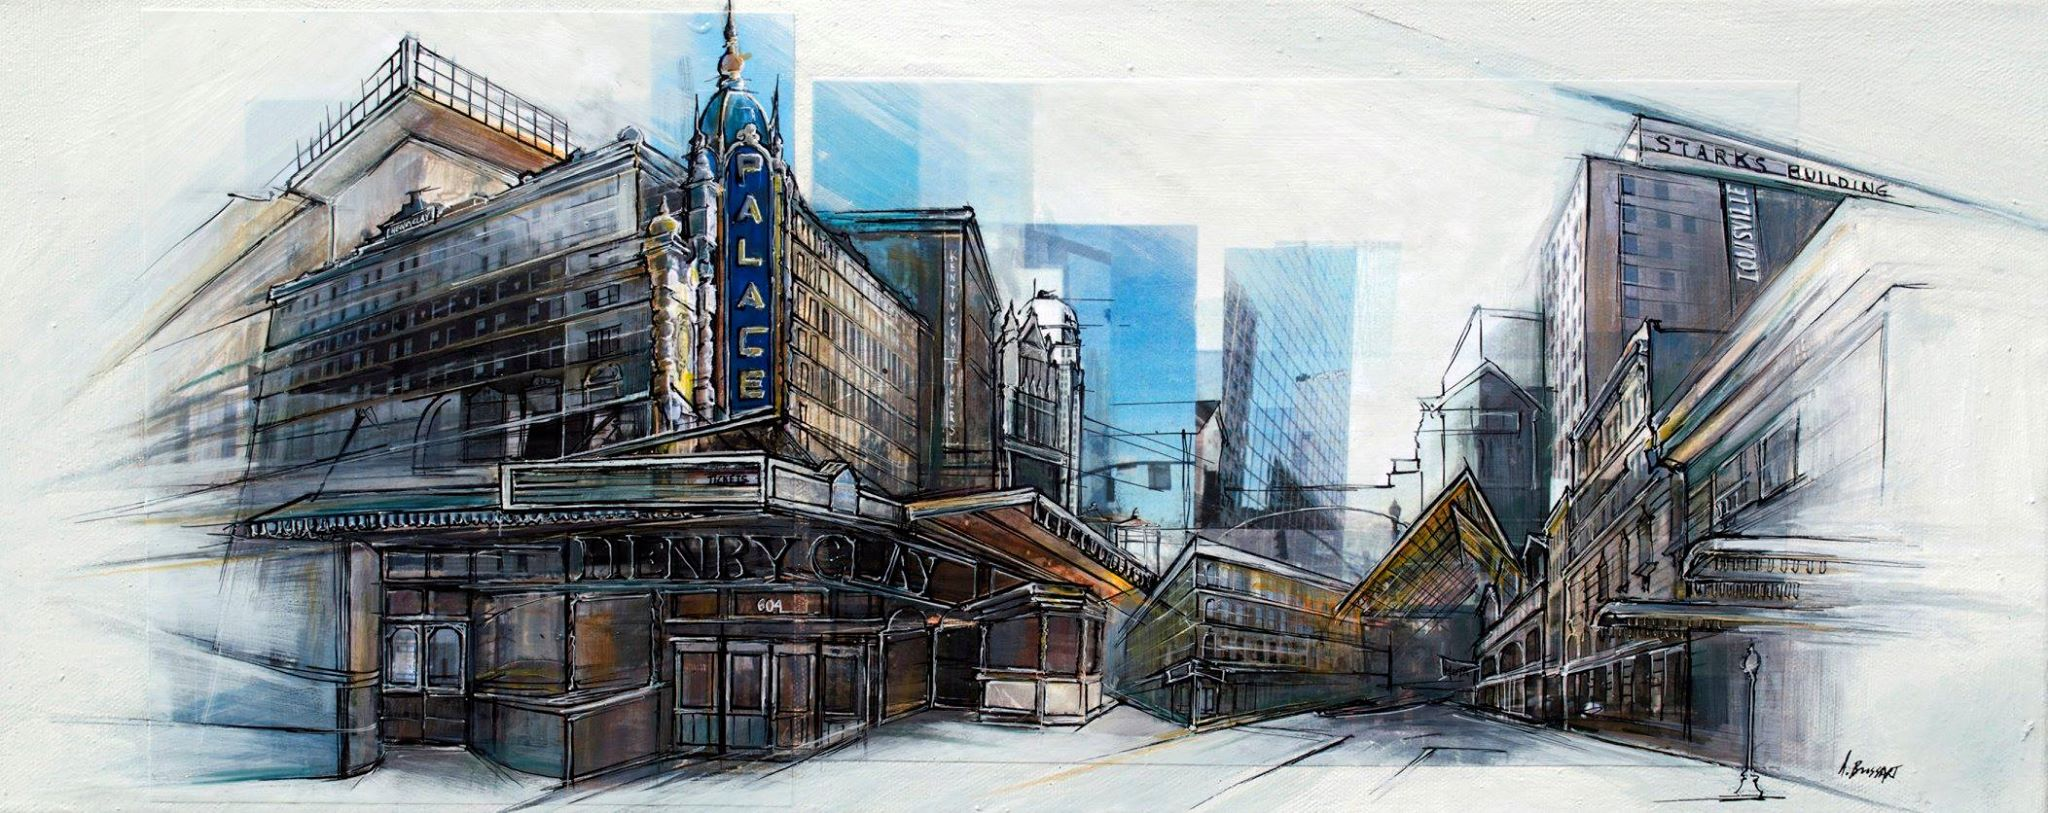 The City Is Alive In The Work Of Ashley Brossart